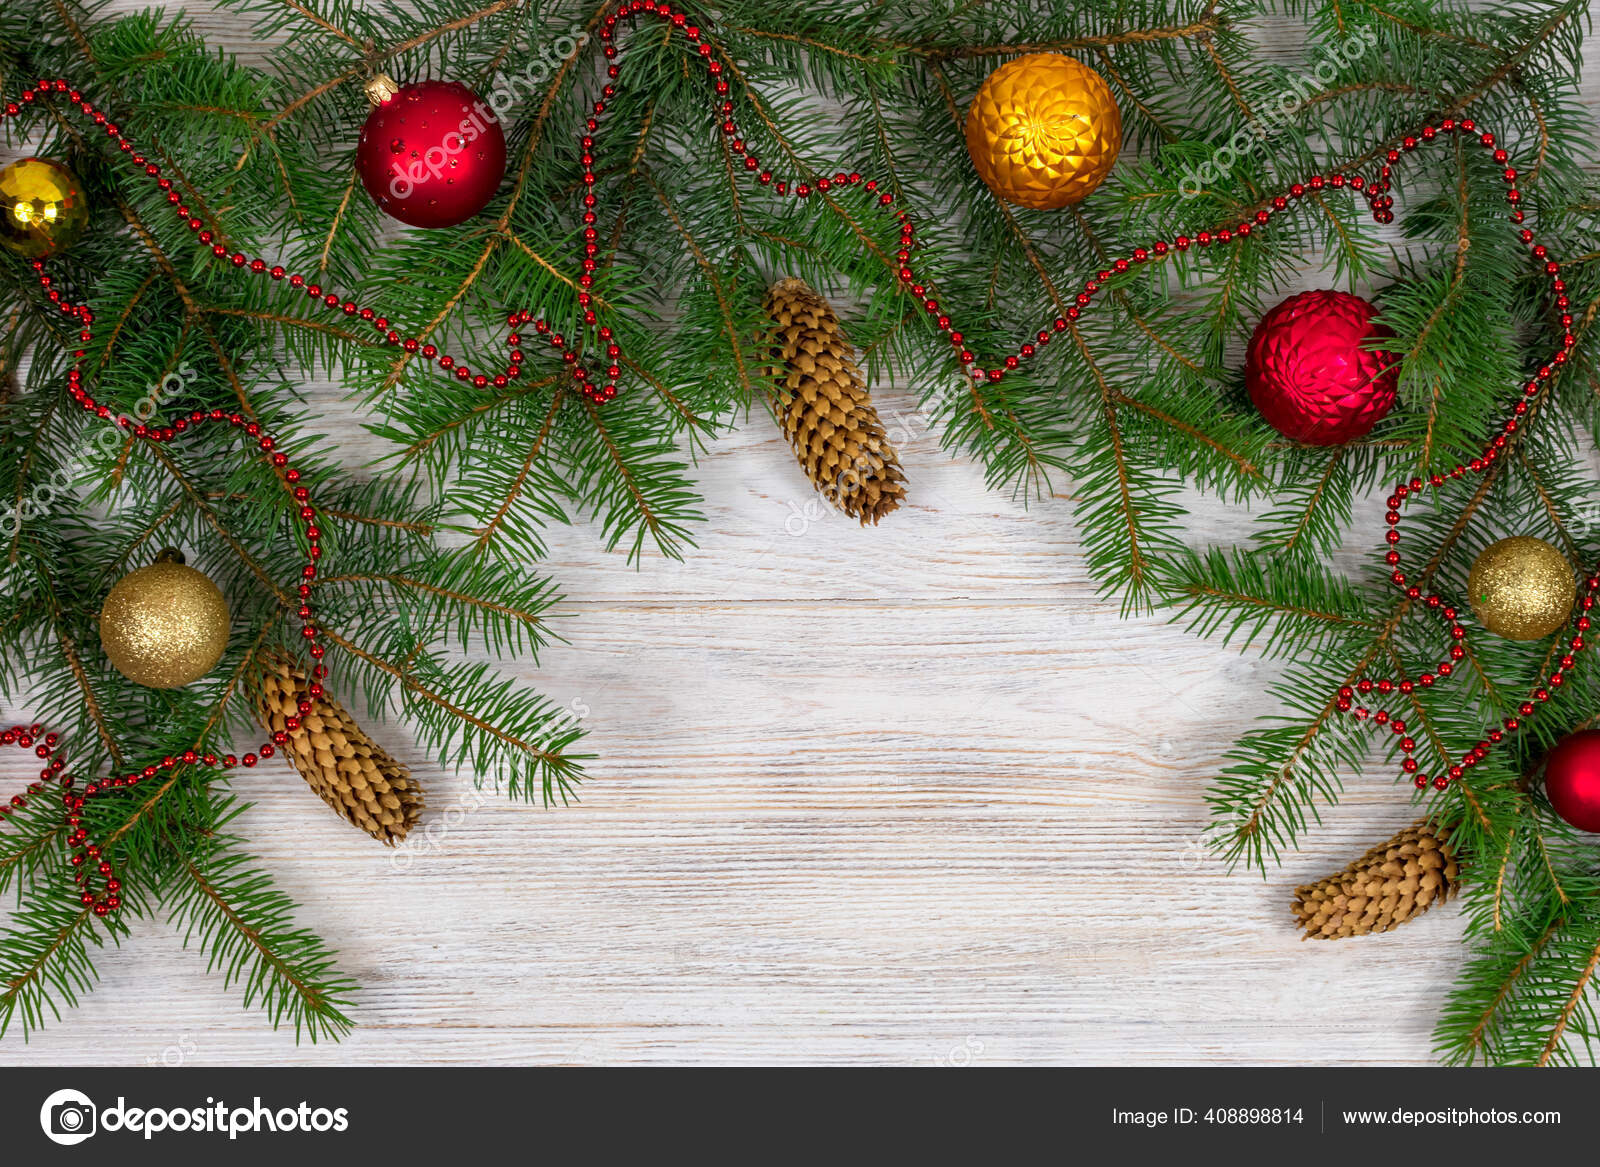 Christmas Tree With Decoration On A White Wooden Background View From Above Place For An Inscription New Year Christmas Stock Photo C Nataliiakozynska 408898814